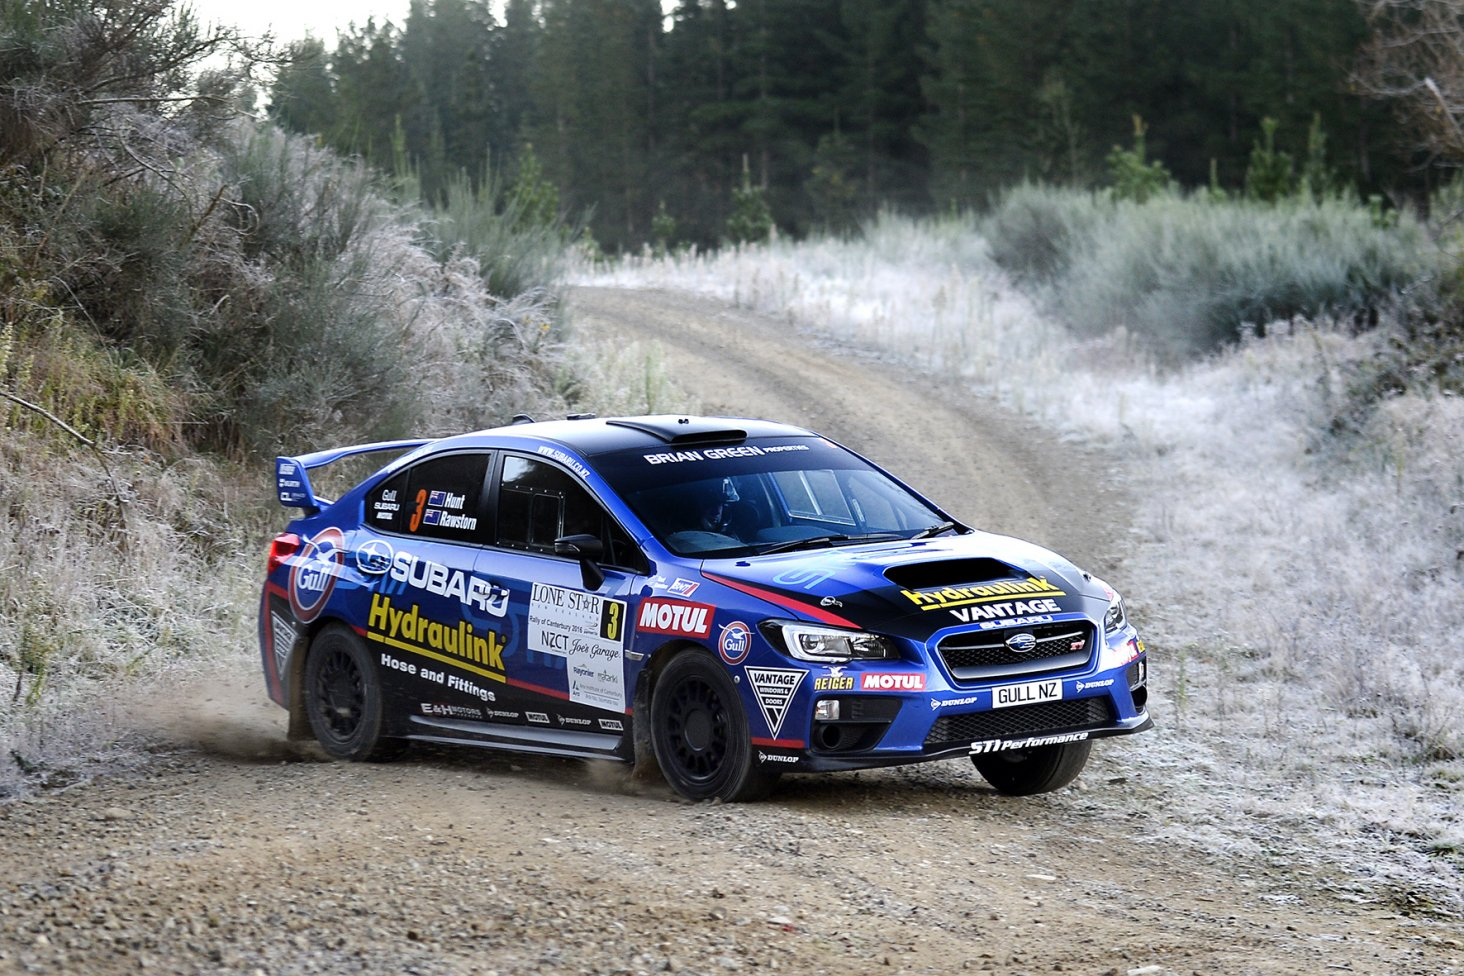 After showing good speed, Ben Hunt and co-driver Tony Rawstorn punctured the radiator in their Subaru WRX STi, forcing them to withdraw from the Joe's Garage/Lone Star Rally Canterbury today. PHOTO CREDIT: GEOFF RIDDER